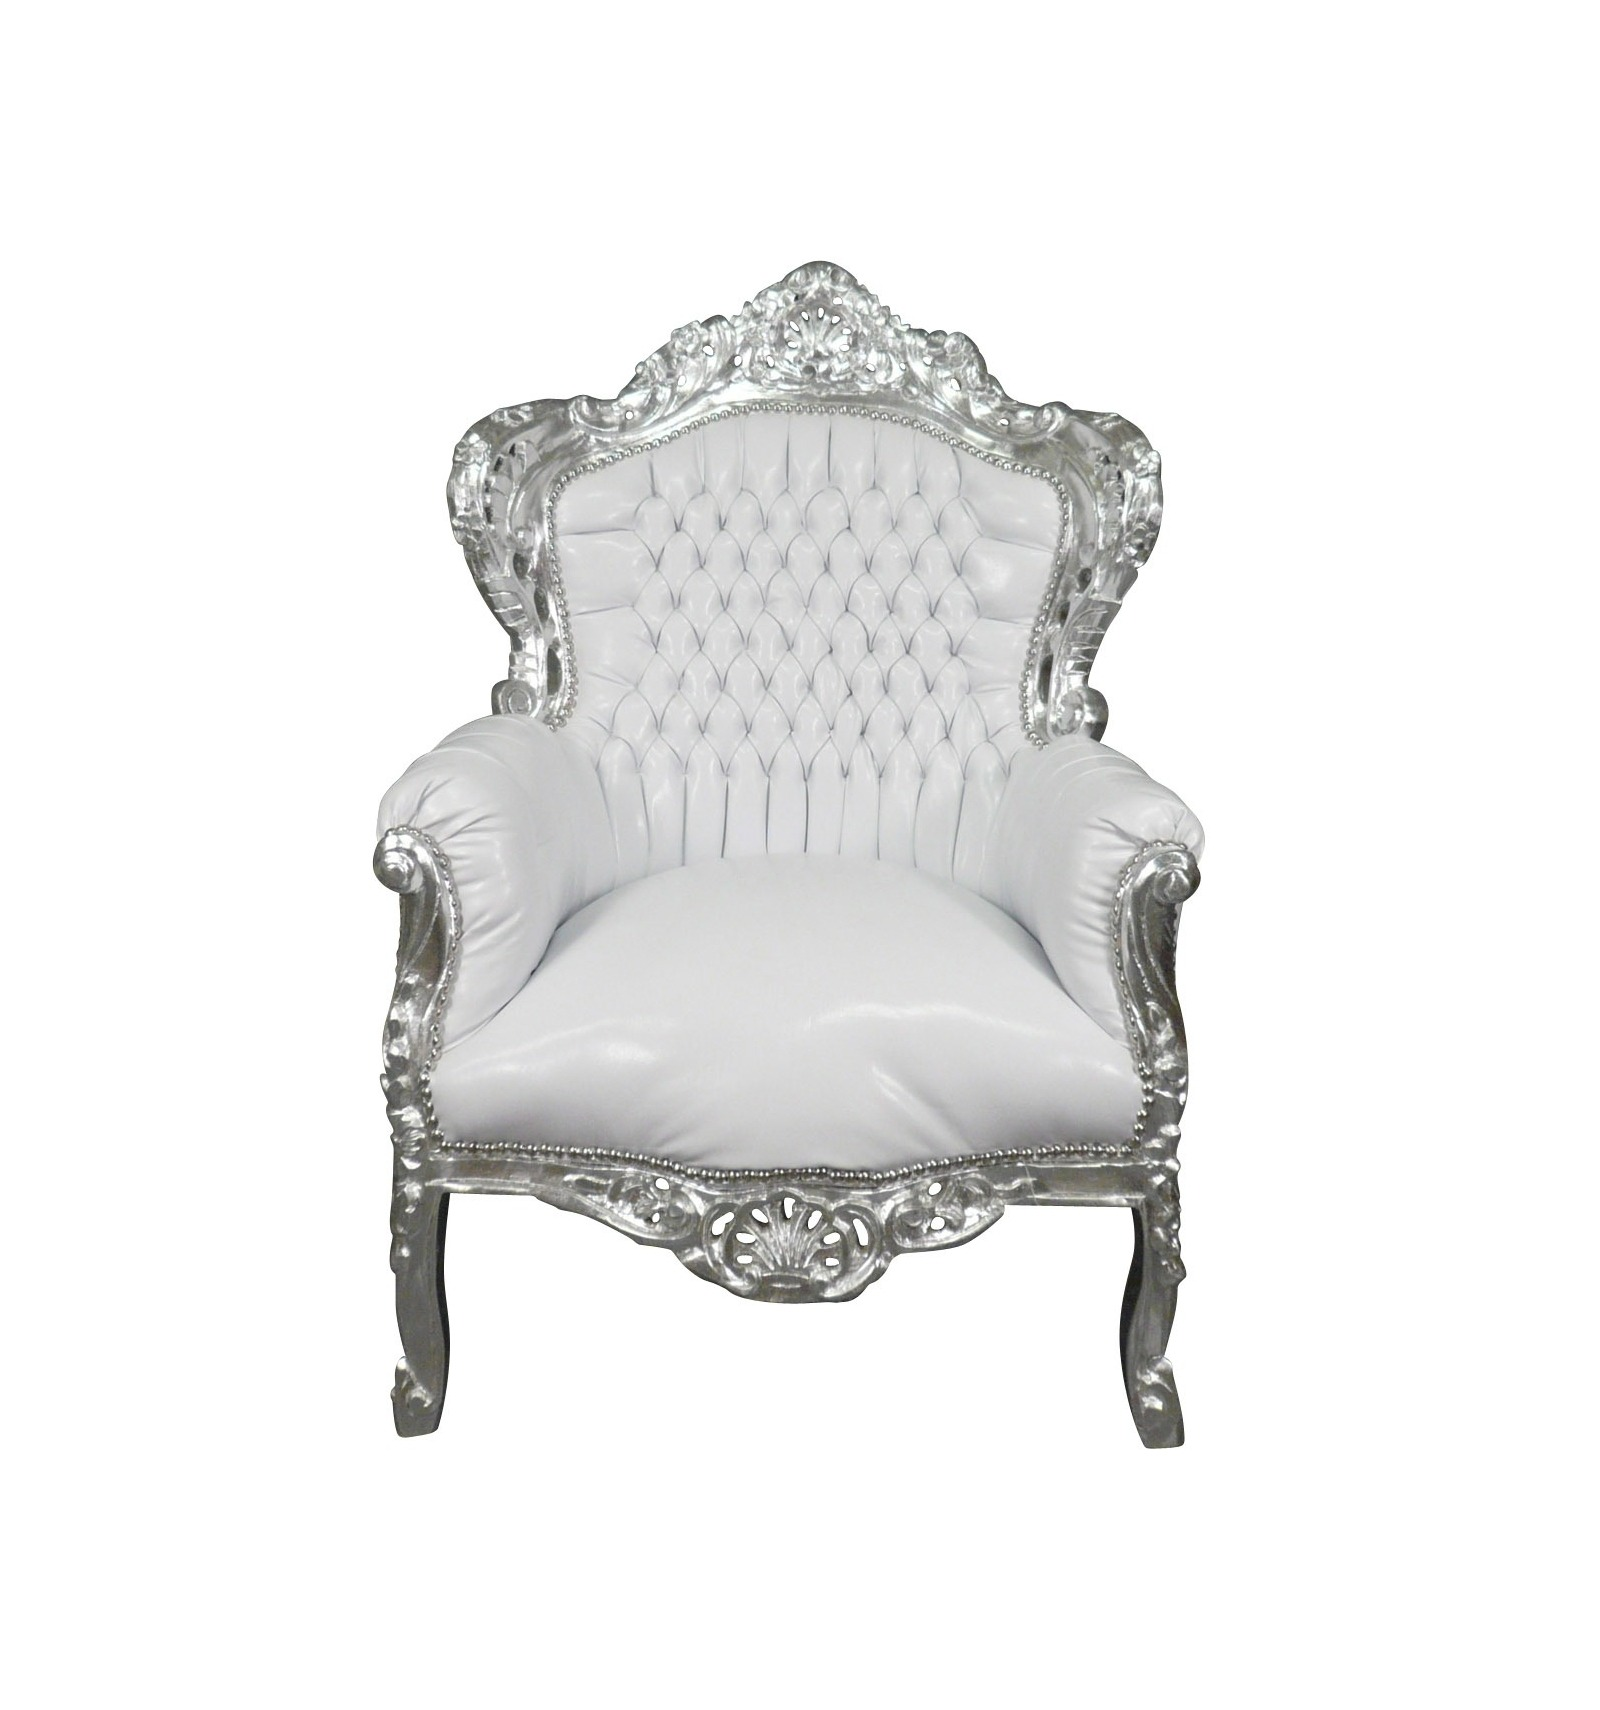 fauteuil baroque blanc argent chaises et meubles art d co. Black Bedroom Furniture Sets. Home Design Ideas